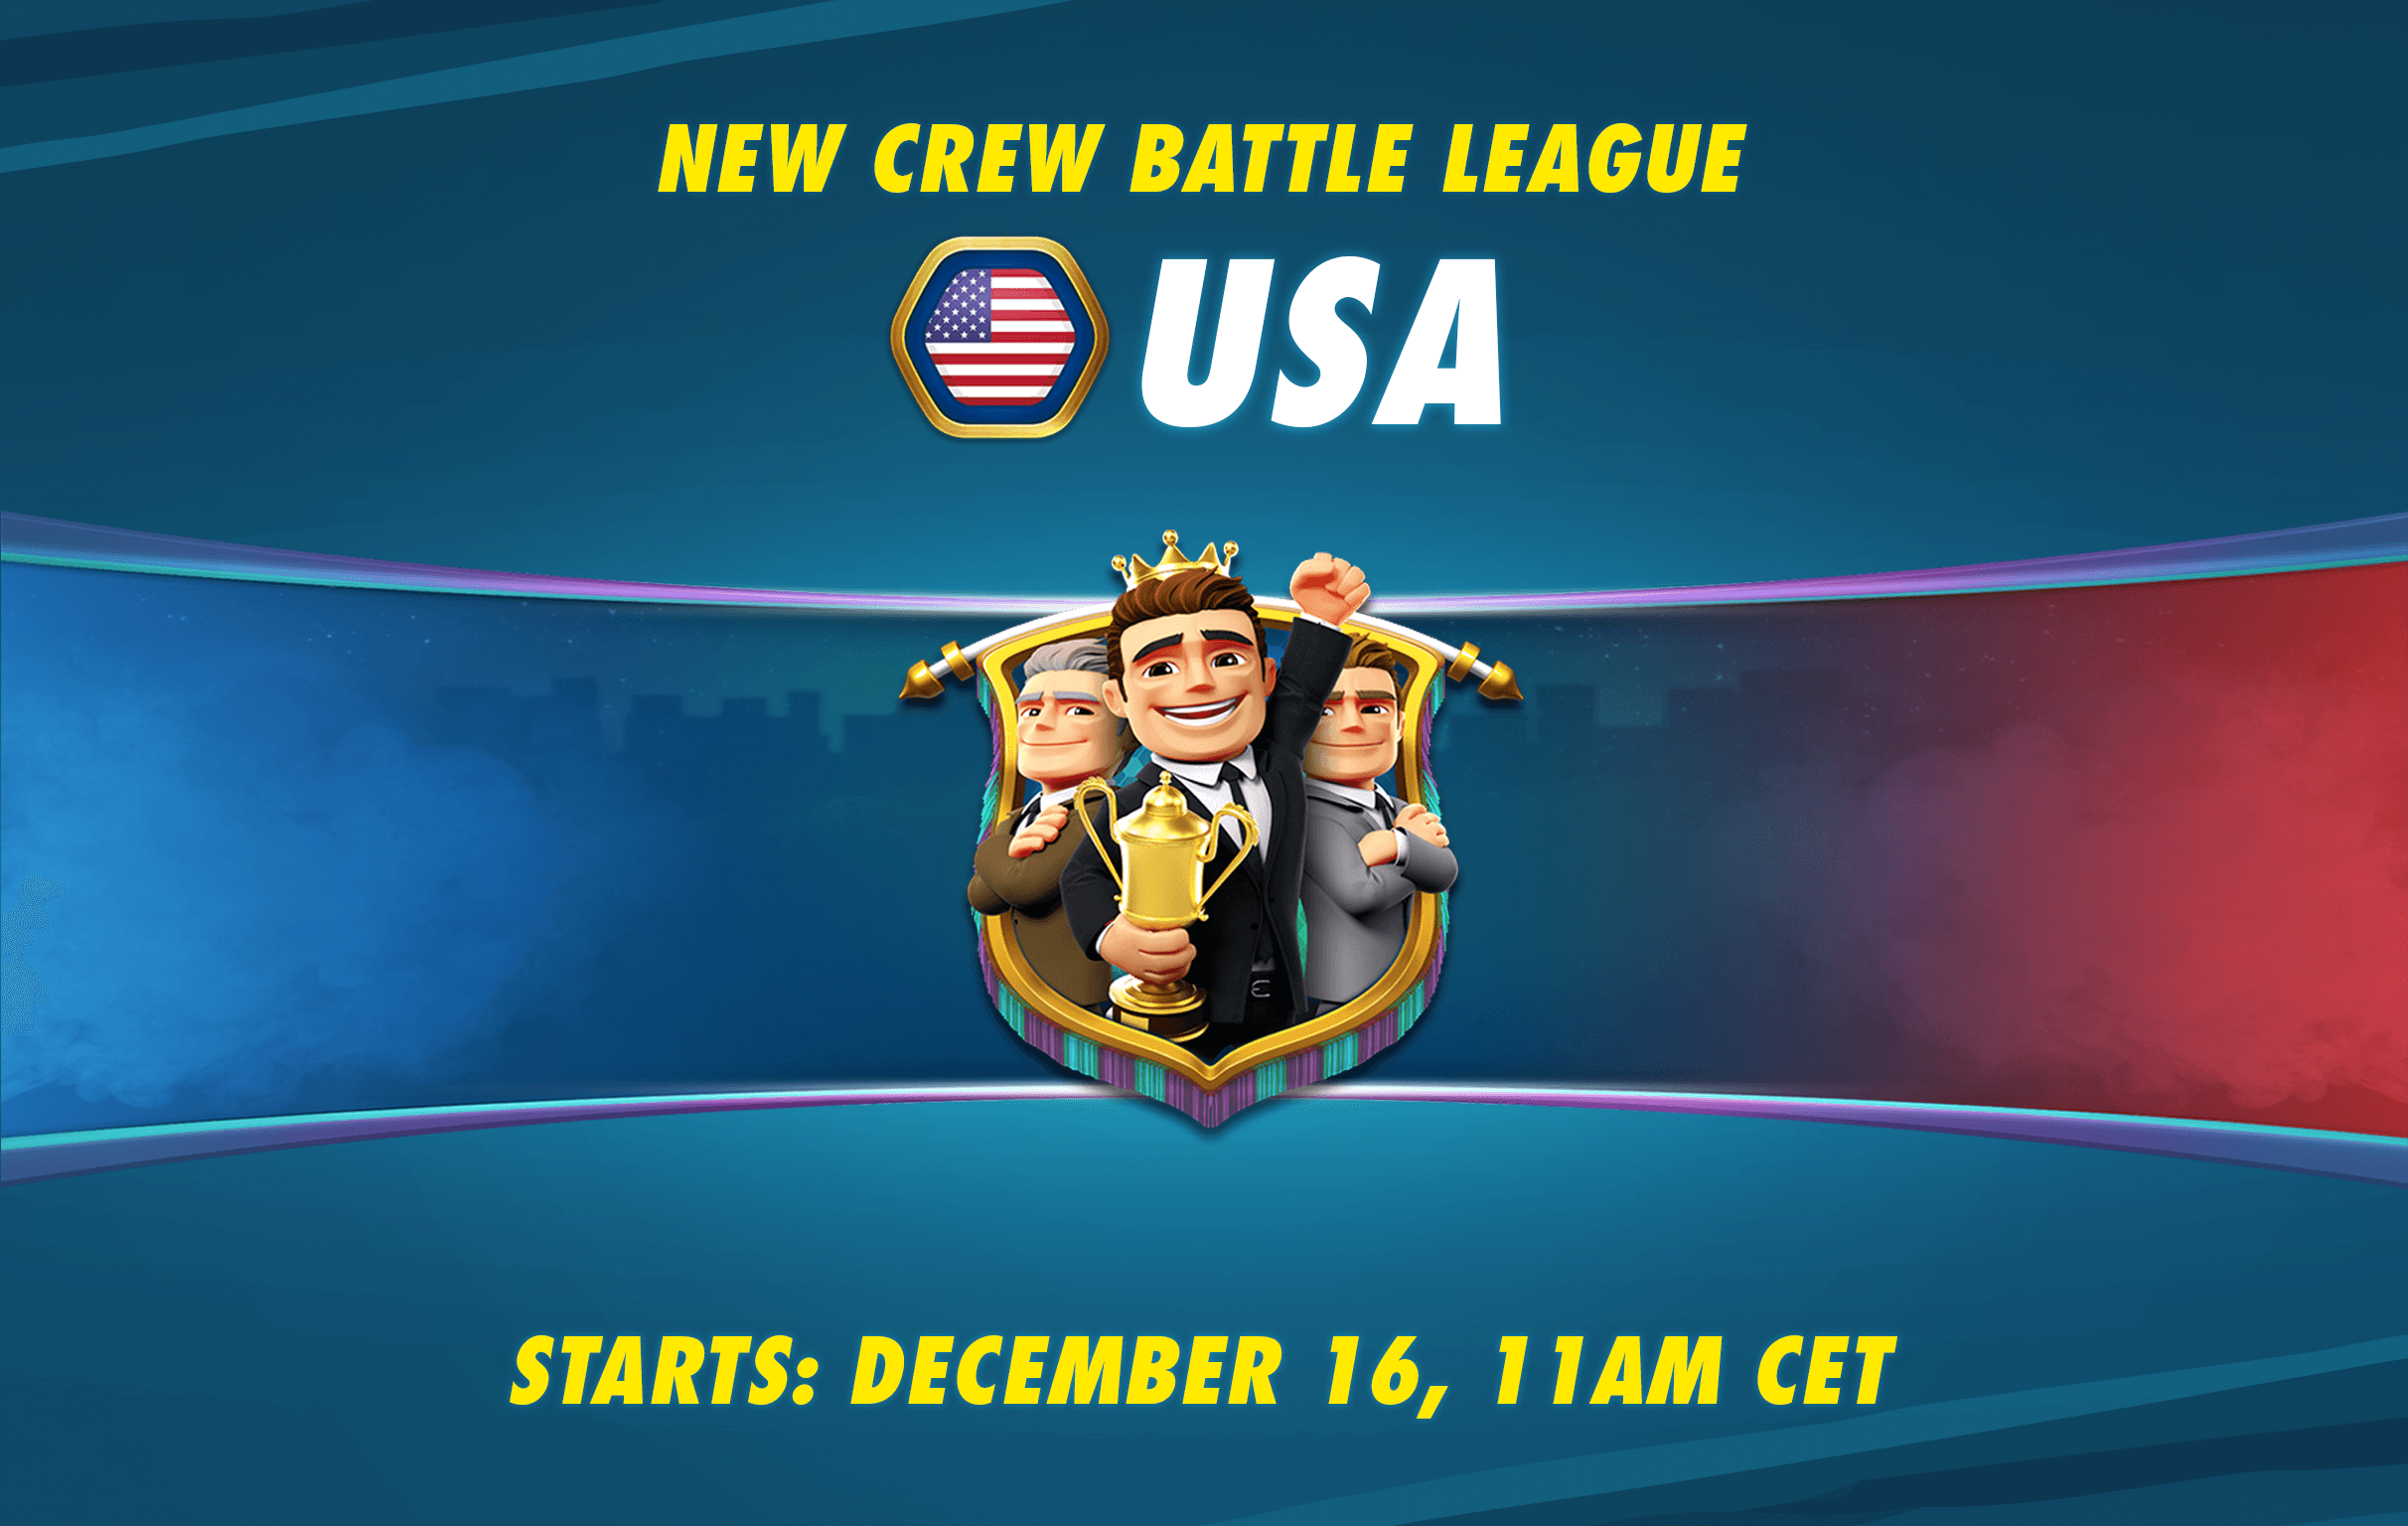 CP_Crew Battle League_USA.png